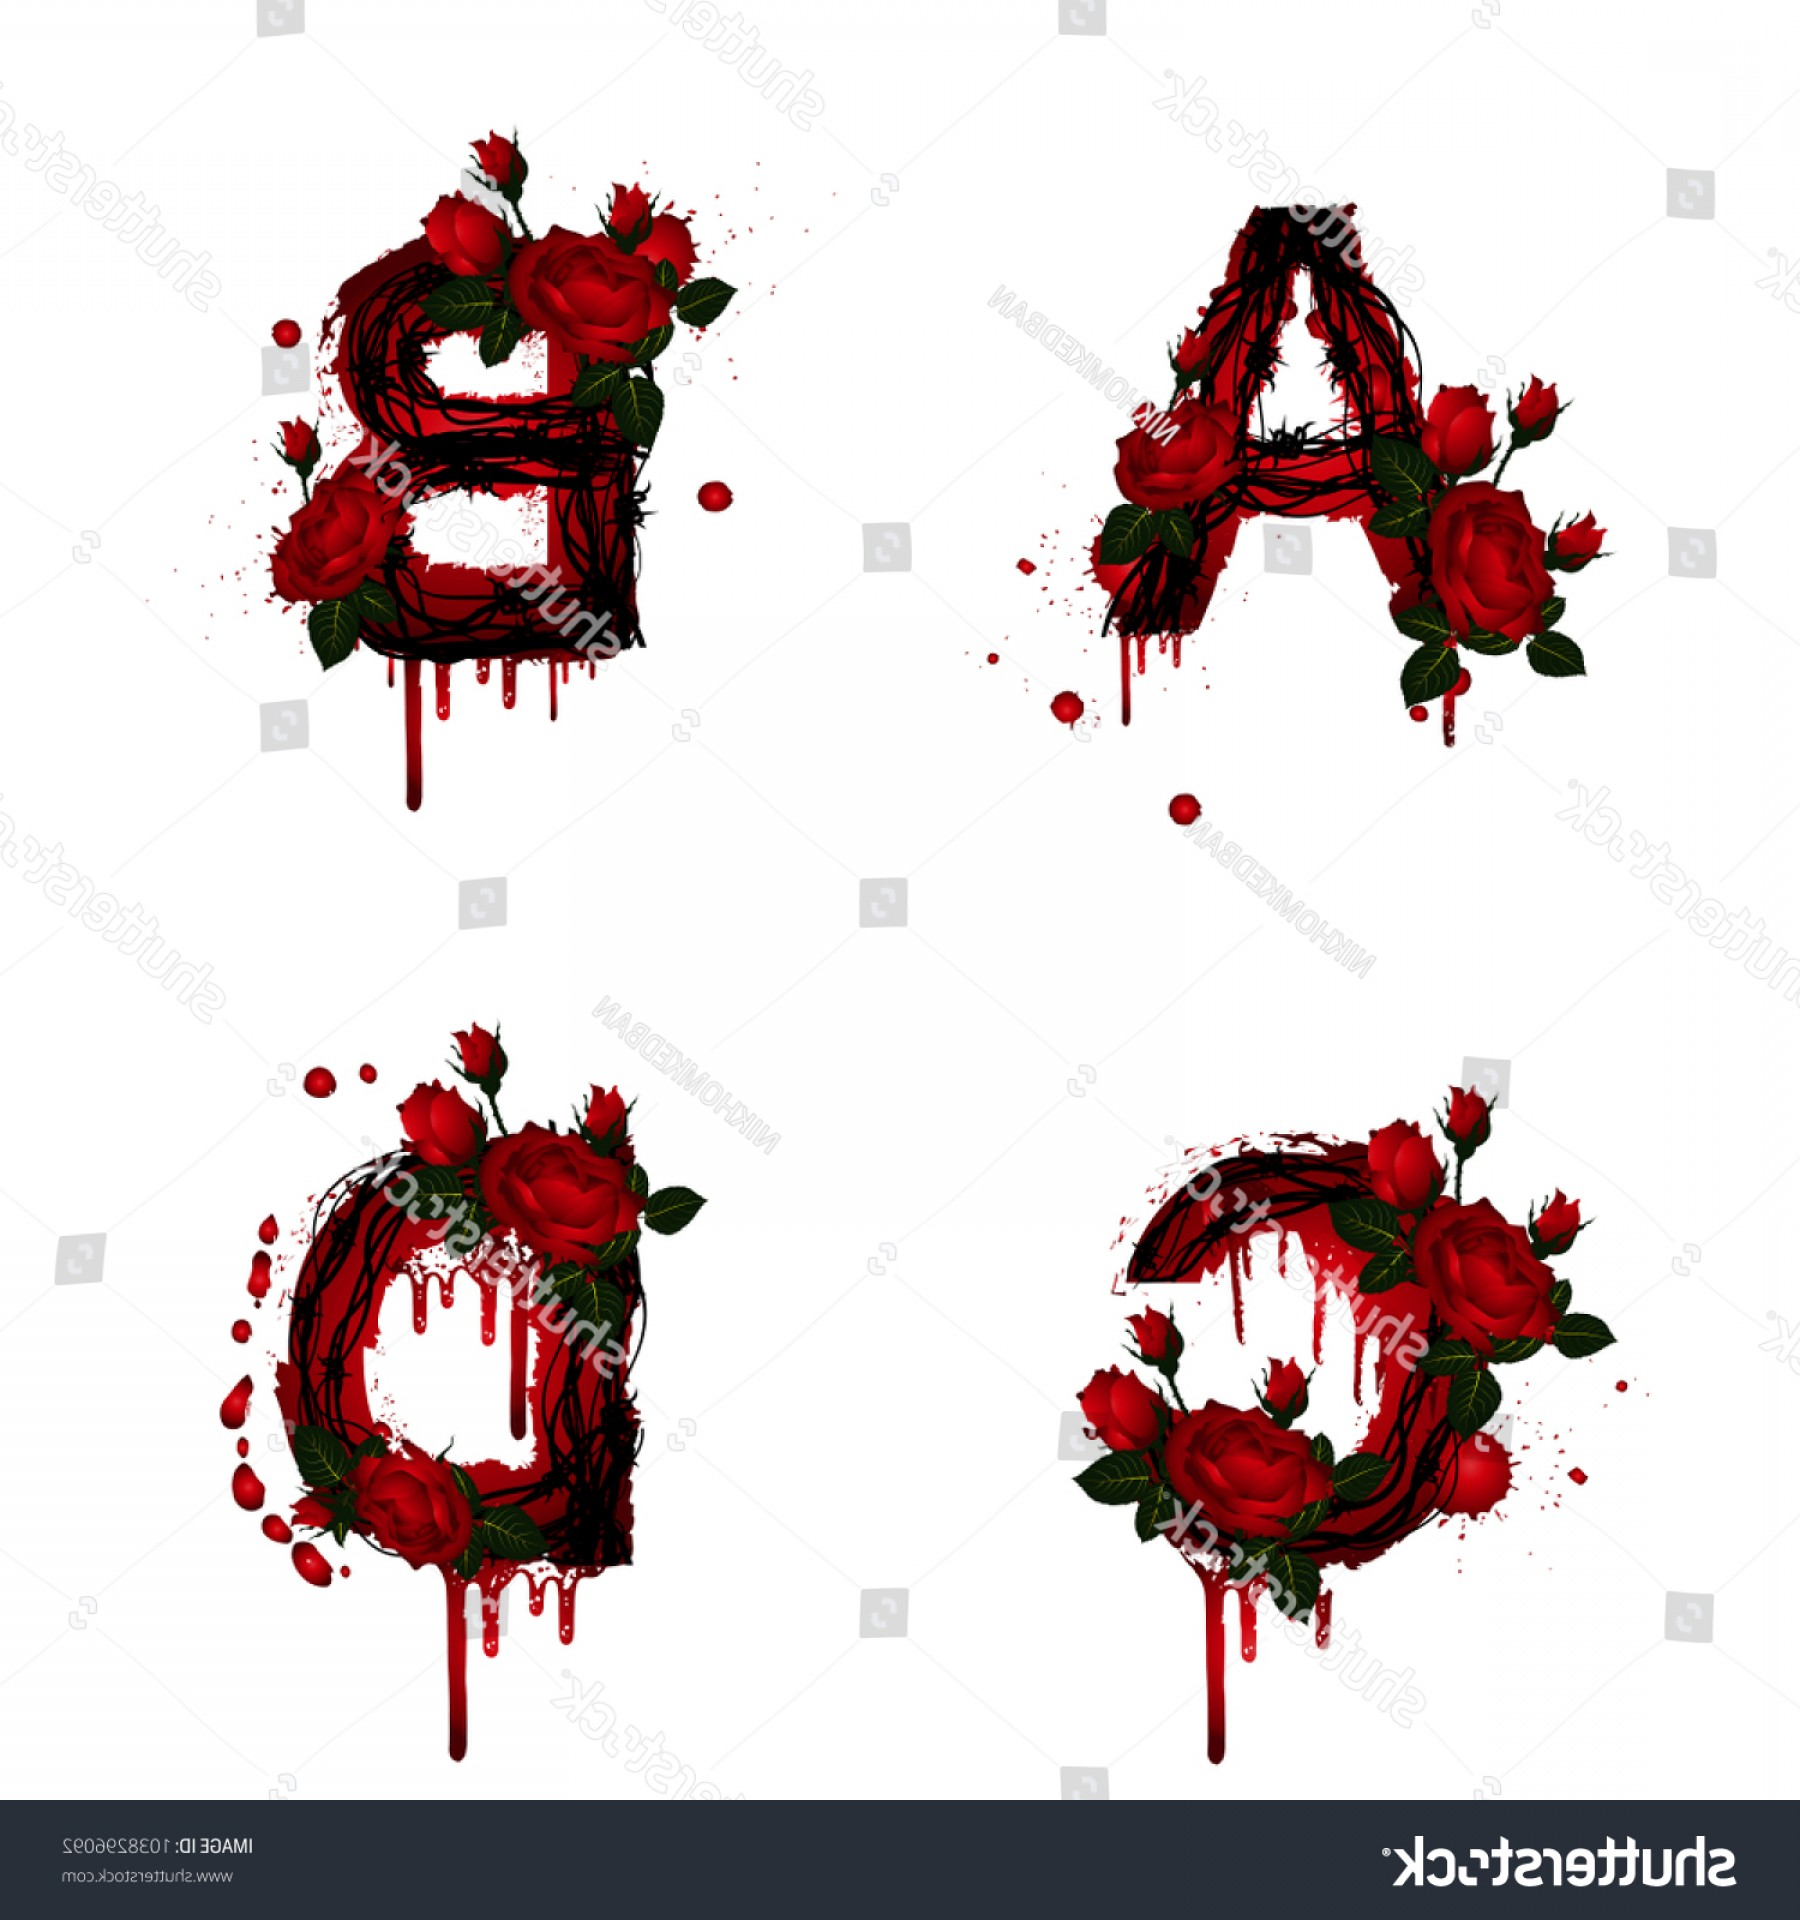 ABC News Logo Vector: Collection Vector Alphabet Rose Flower Abc